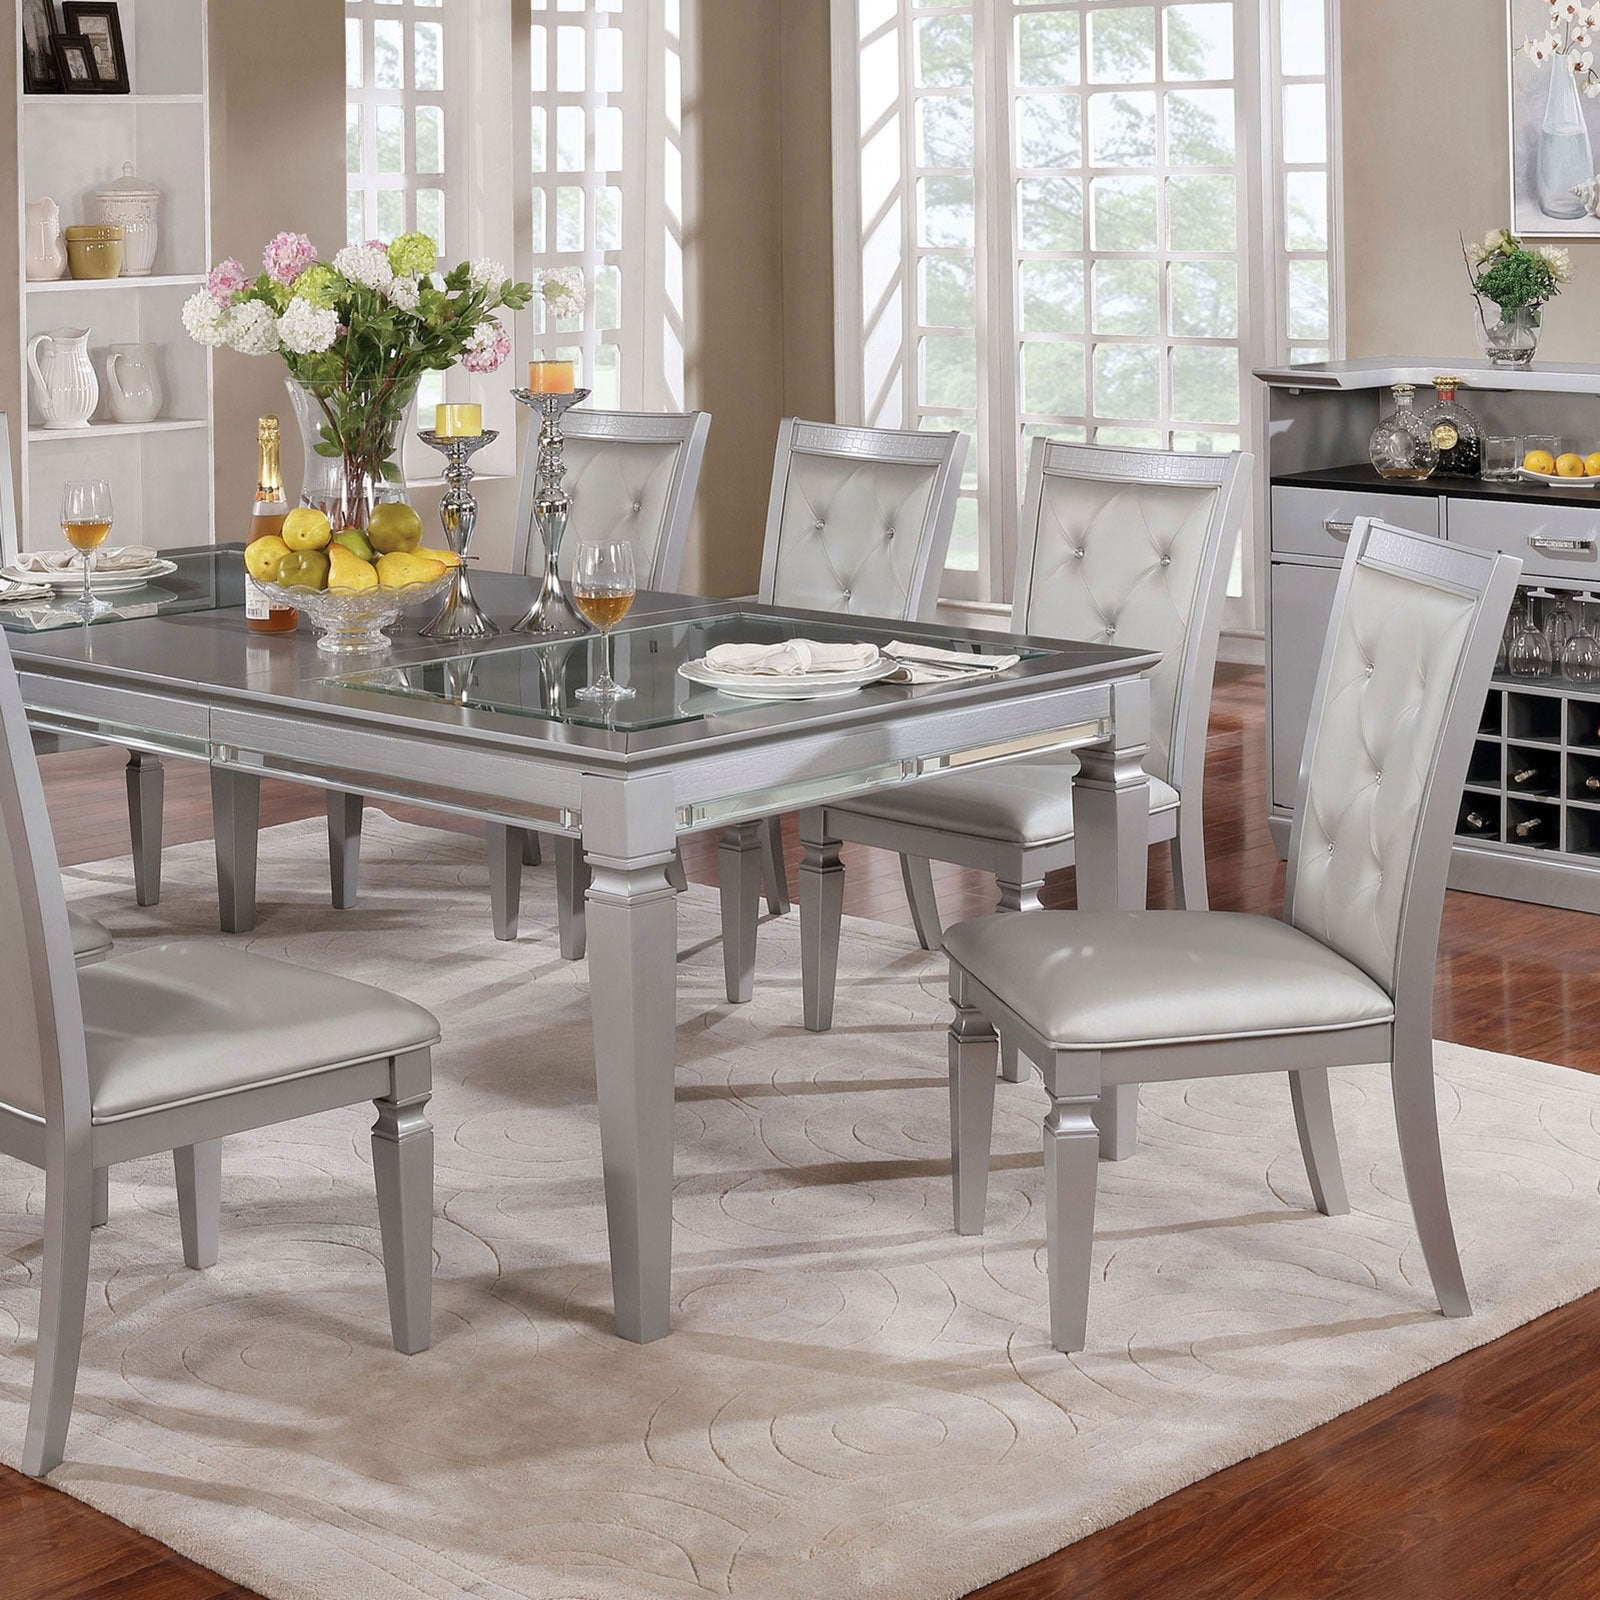 Alena Dining Table Silver (Table Only) - InteriorDesignsToGo.com